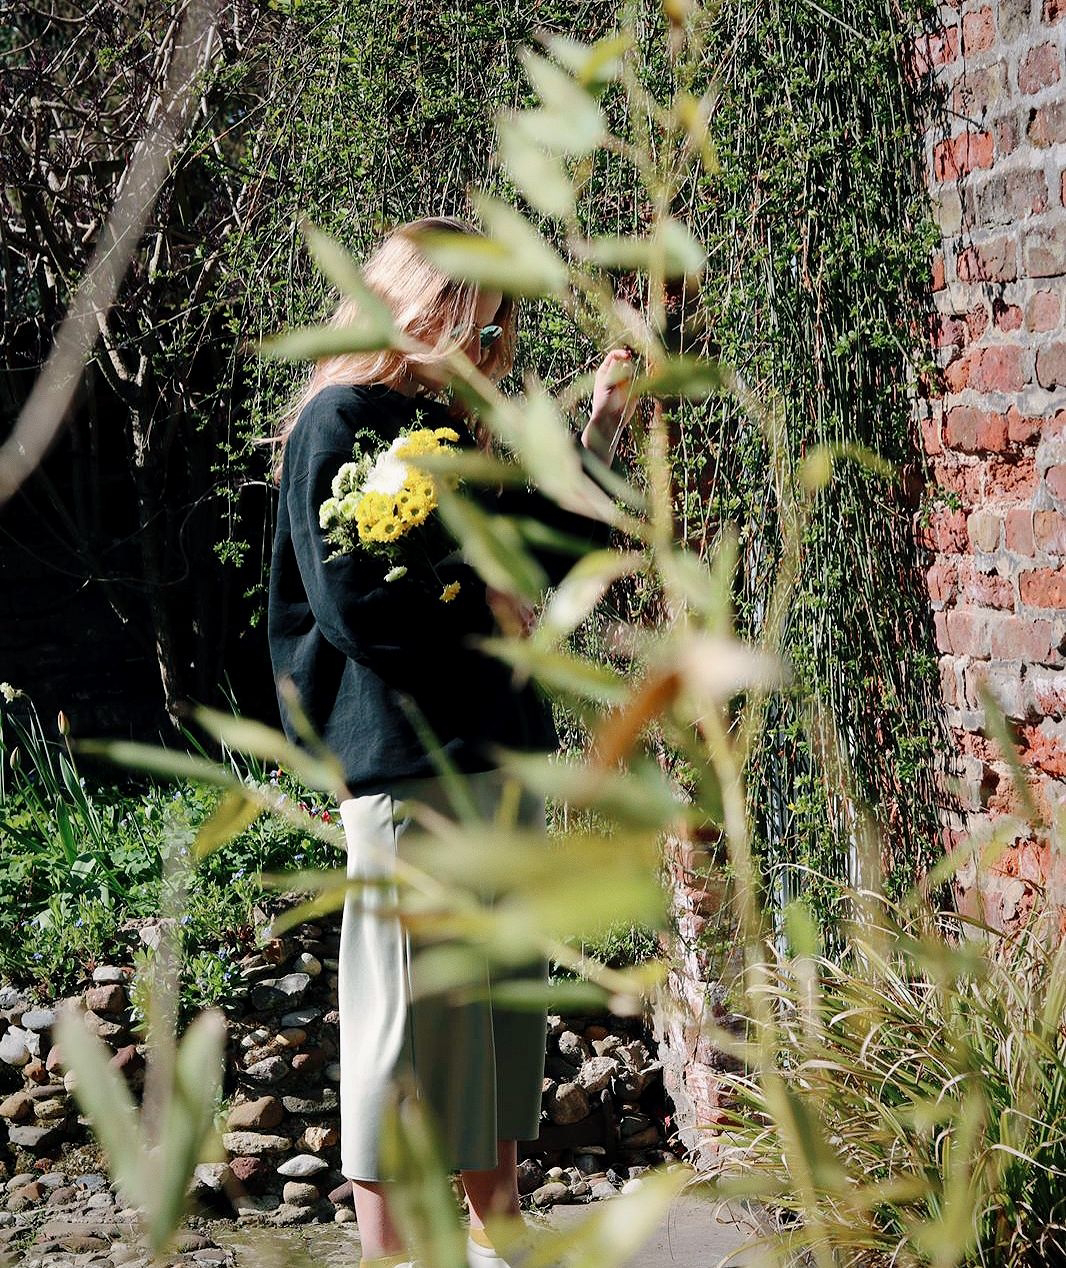 Amy is standing in an overgrown garden, hidden behind some greenery, holding a bunch of flowers in one arm